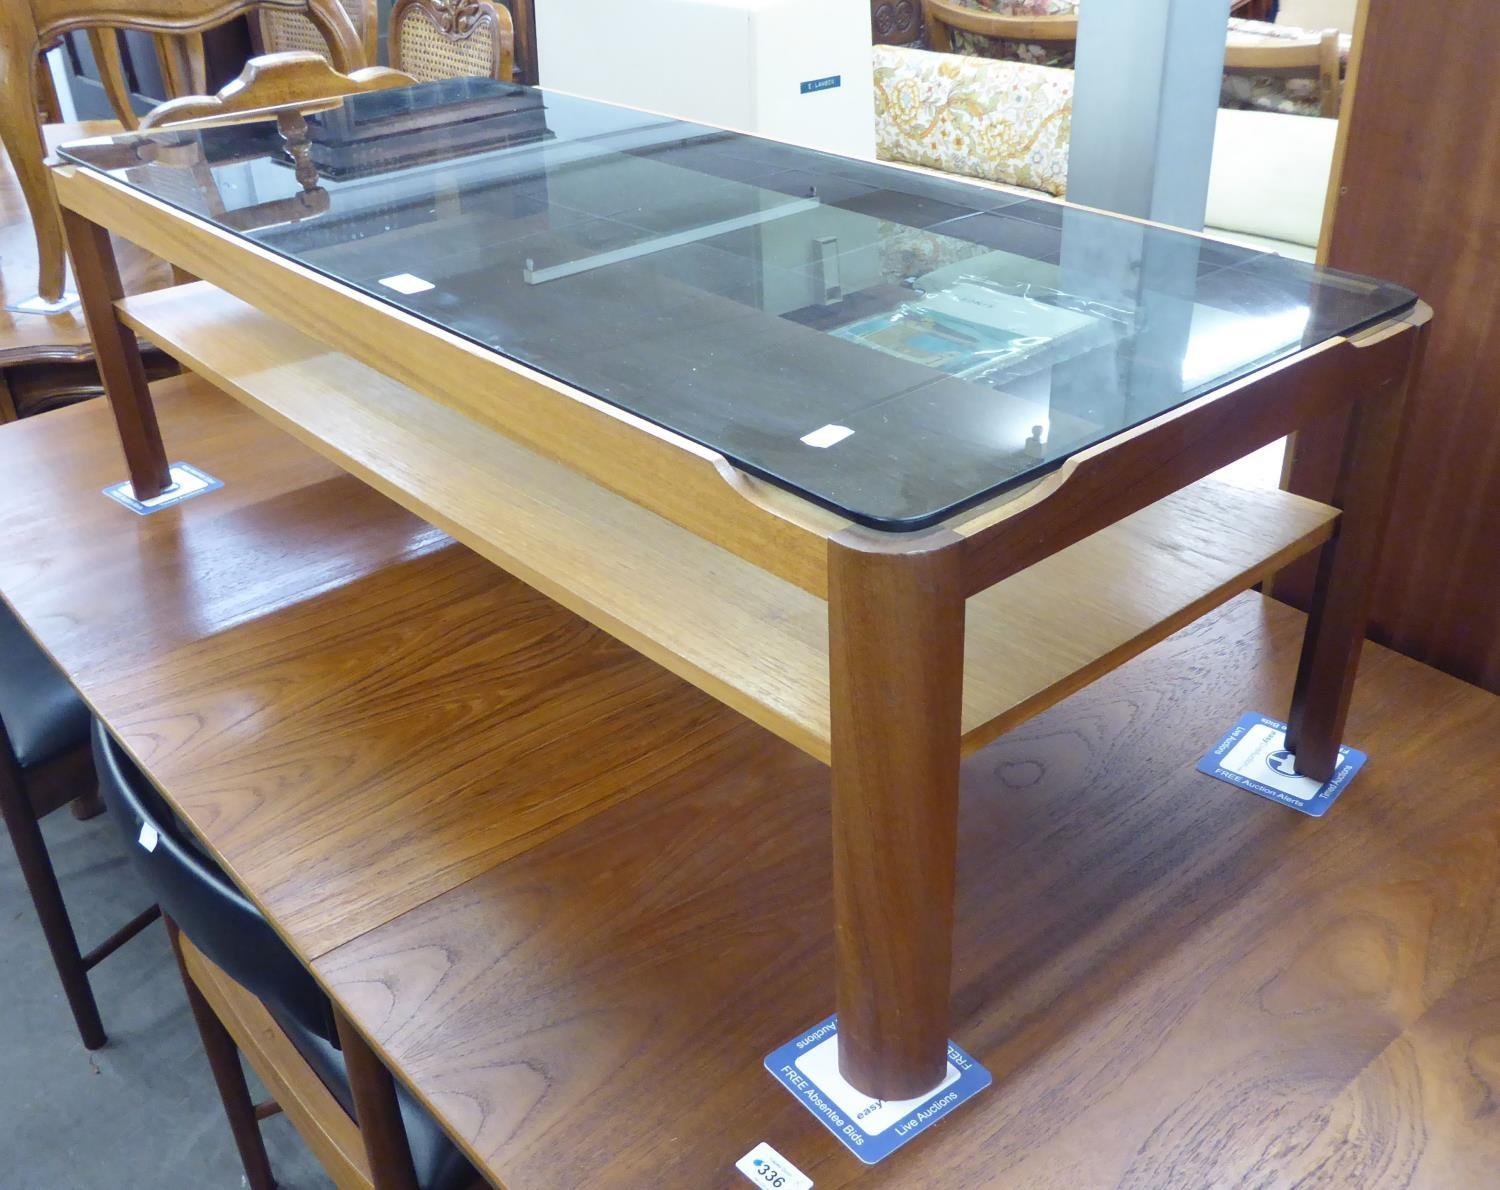 1960's/70's TEAK OBLONG COFFEE TABLE, WITH SMOKED GLASS TOP AND A MATCHING SQUARE COFFEE TABLE